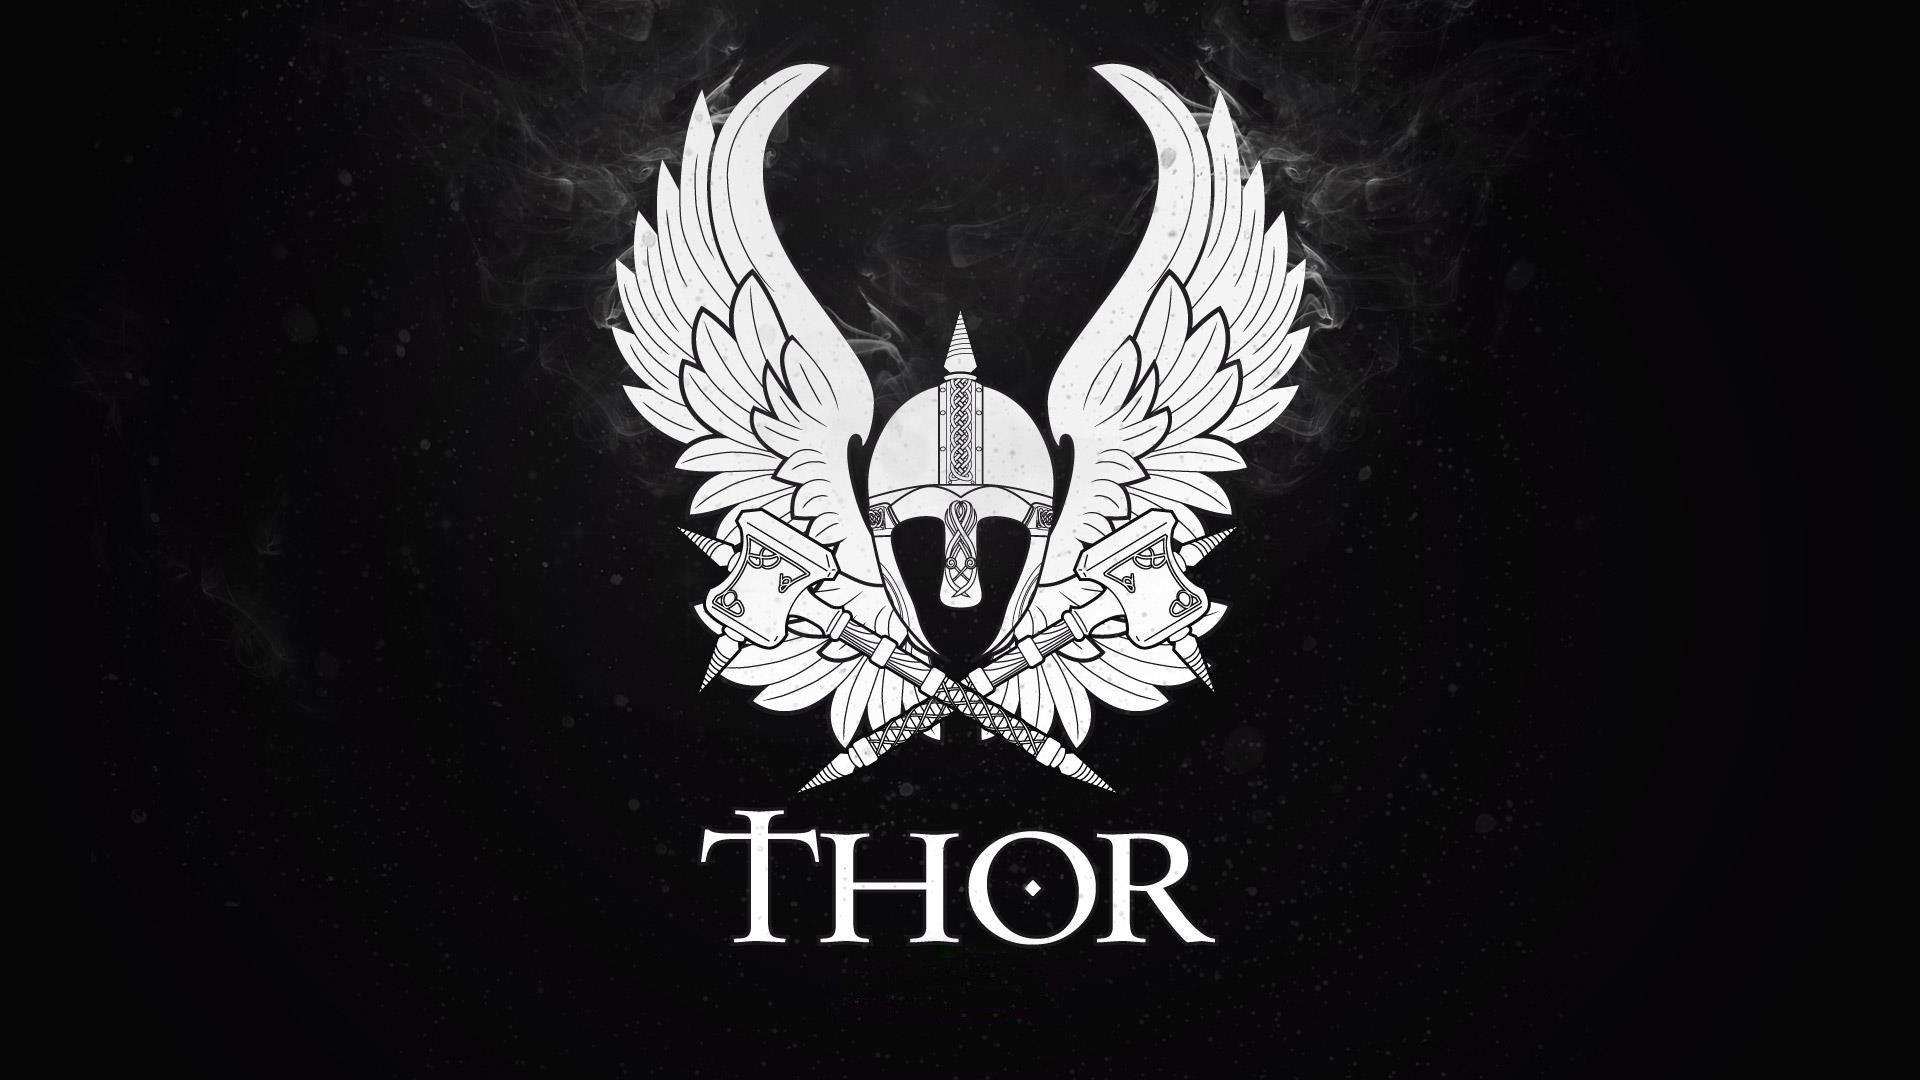 Thor logo wallpapers wallpaper cave - Thor hammer hd pics ...